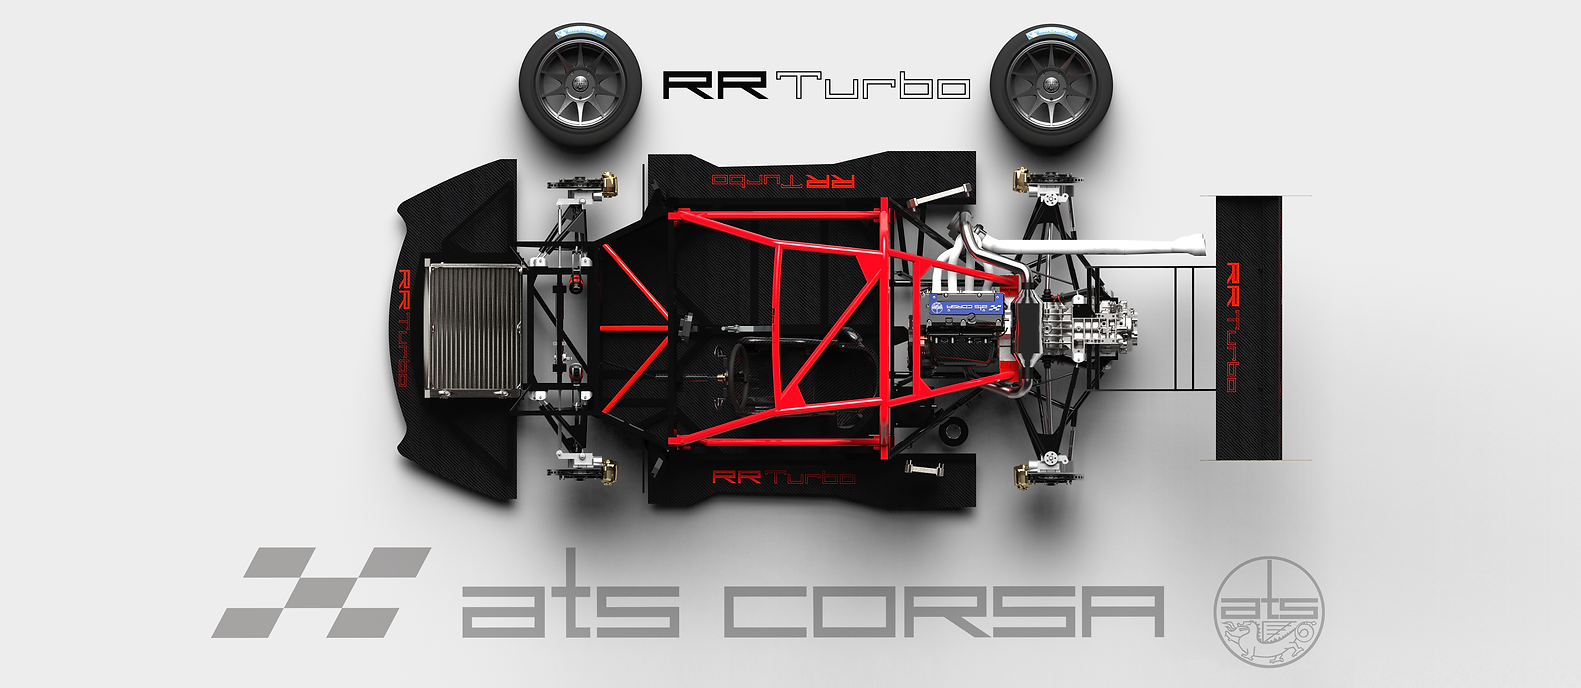 ATS_RRTURBO_TOP VIEW_LOW.png